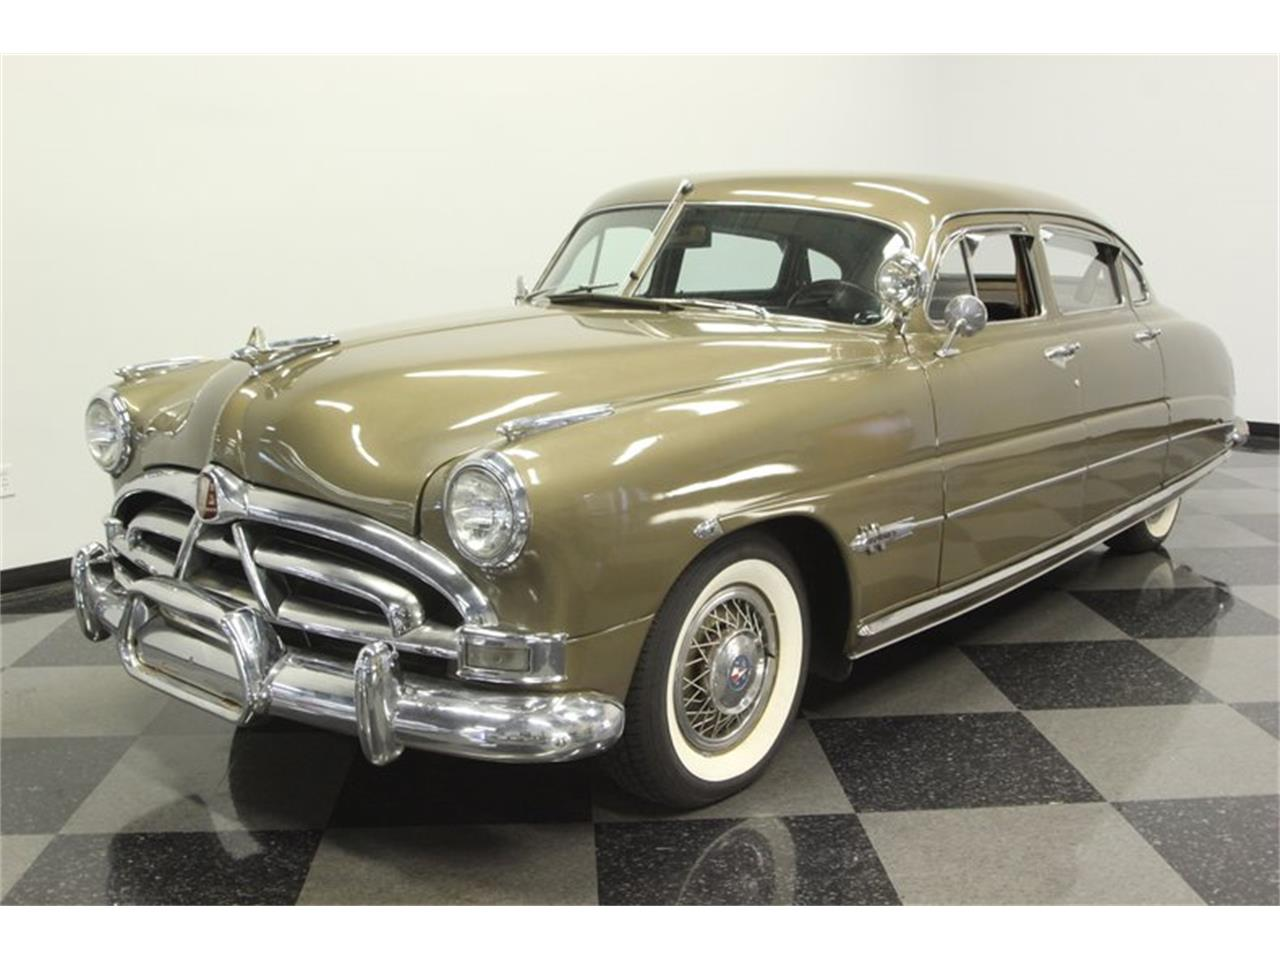 Large Picture of 1951 Hudson Hornet located in Lutz Florida - $24,995.00 Offered by Streetside Classics - Tampa - PRXG